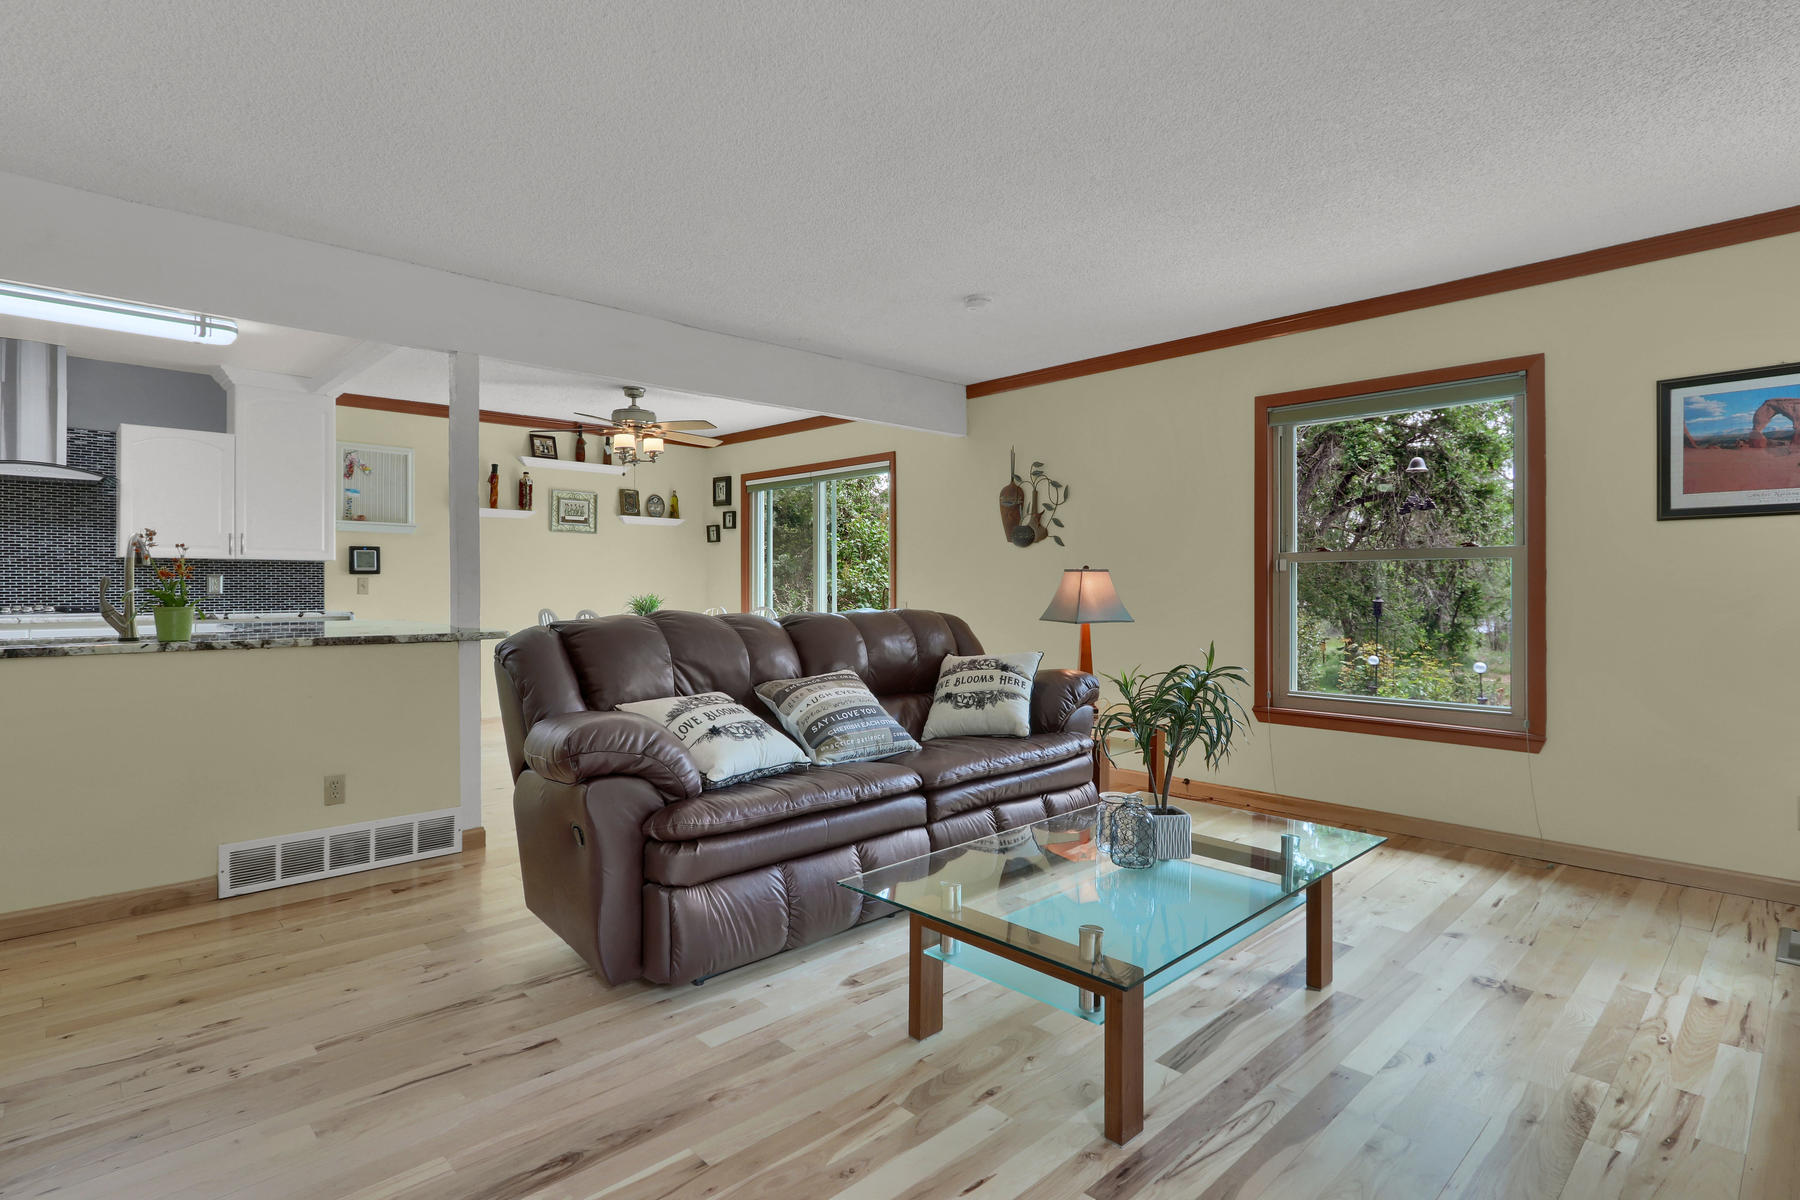 8490 Independence Way Arvada-023-030-Living Room-MLS_Size.jpg